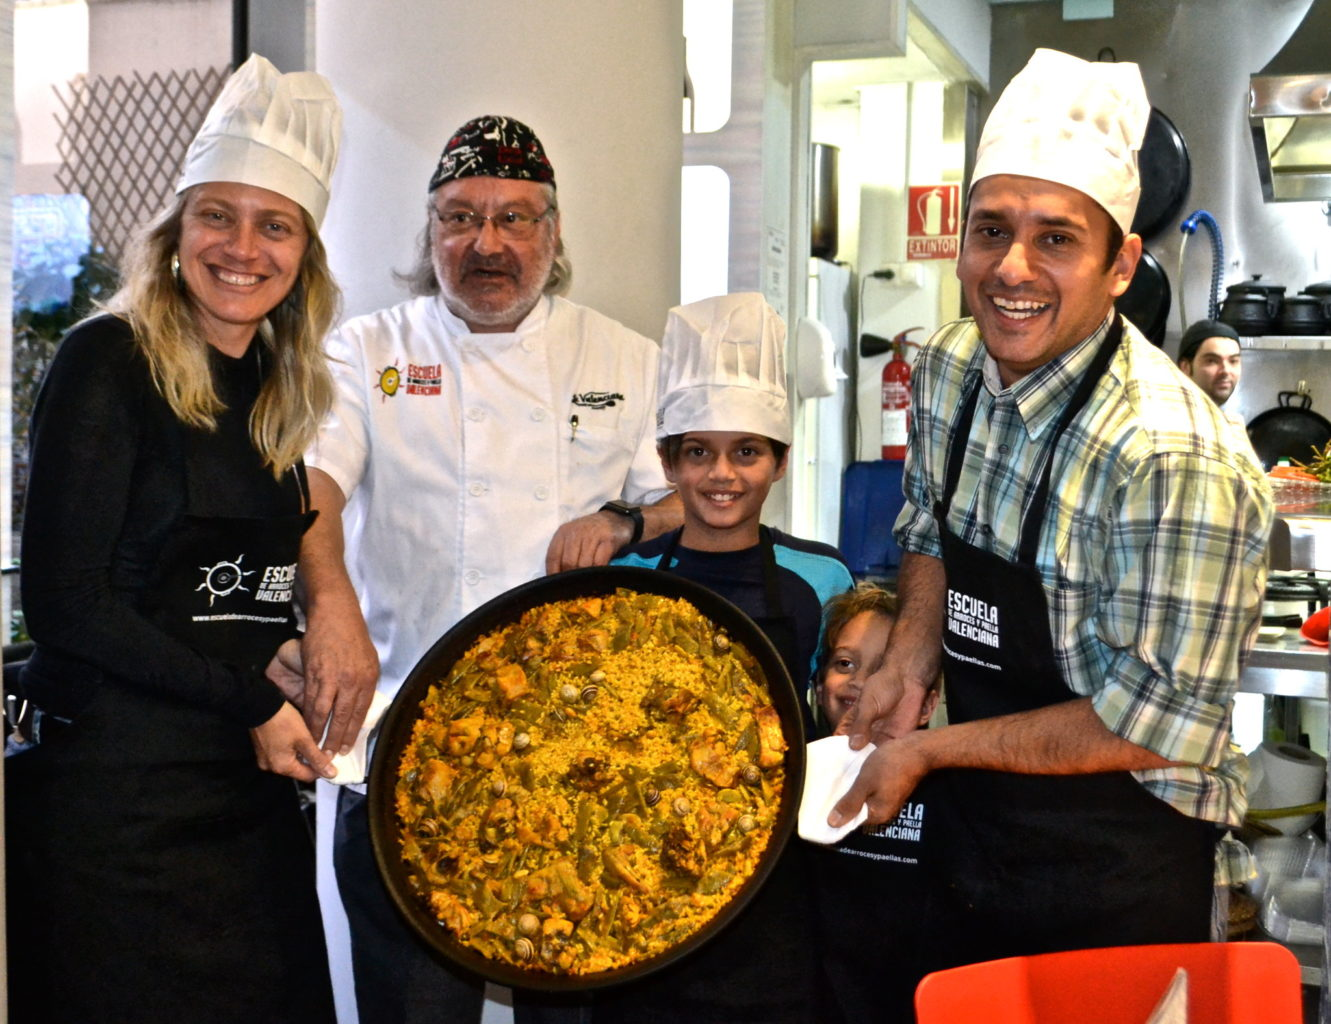 Family paella cooking tour and meal in Spain.